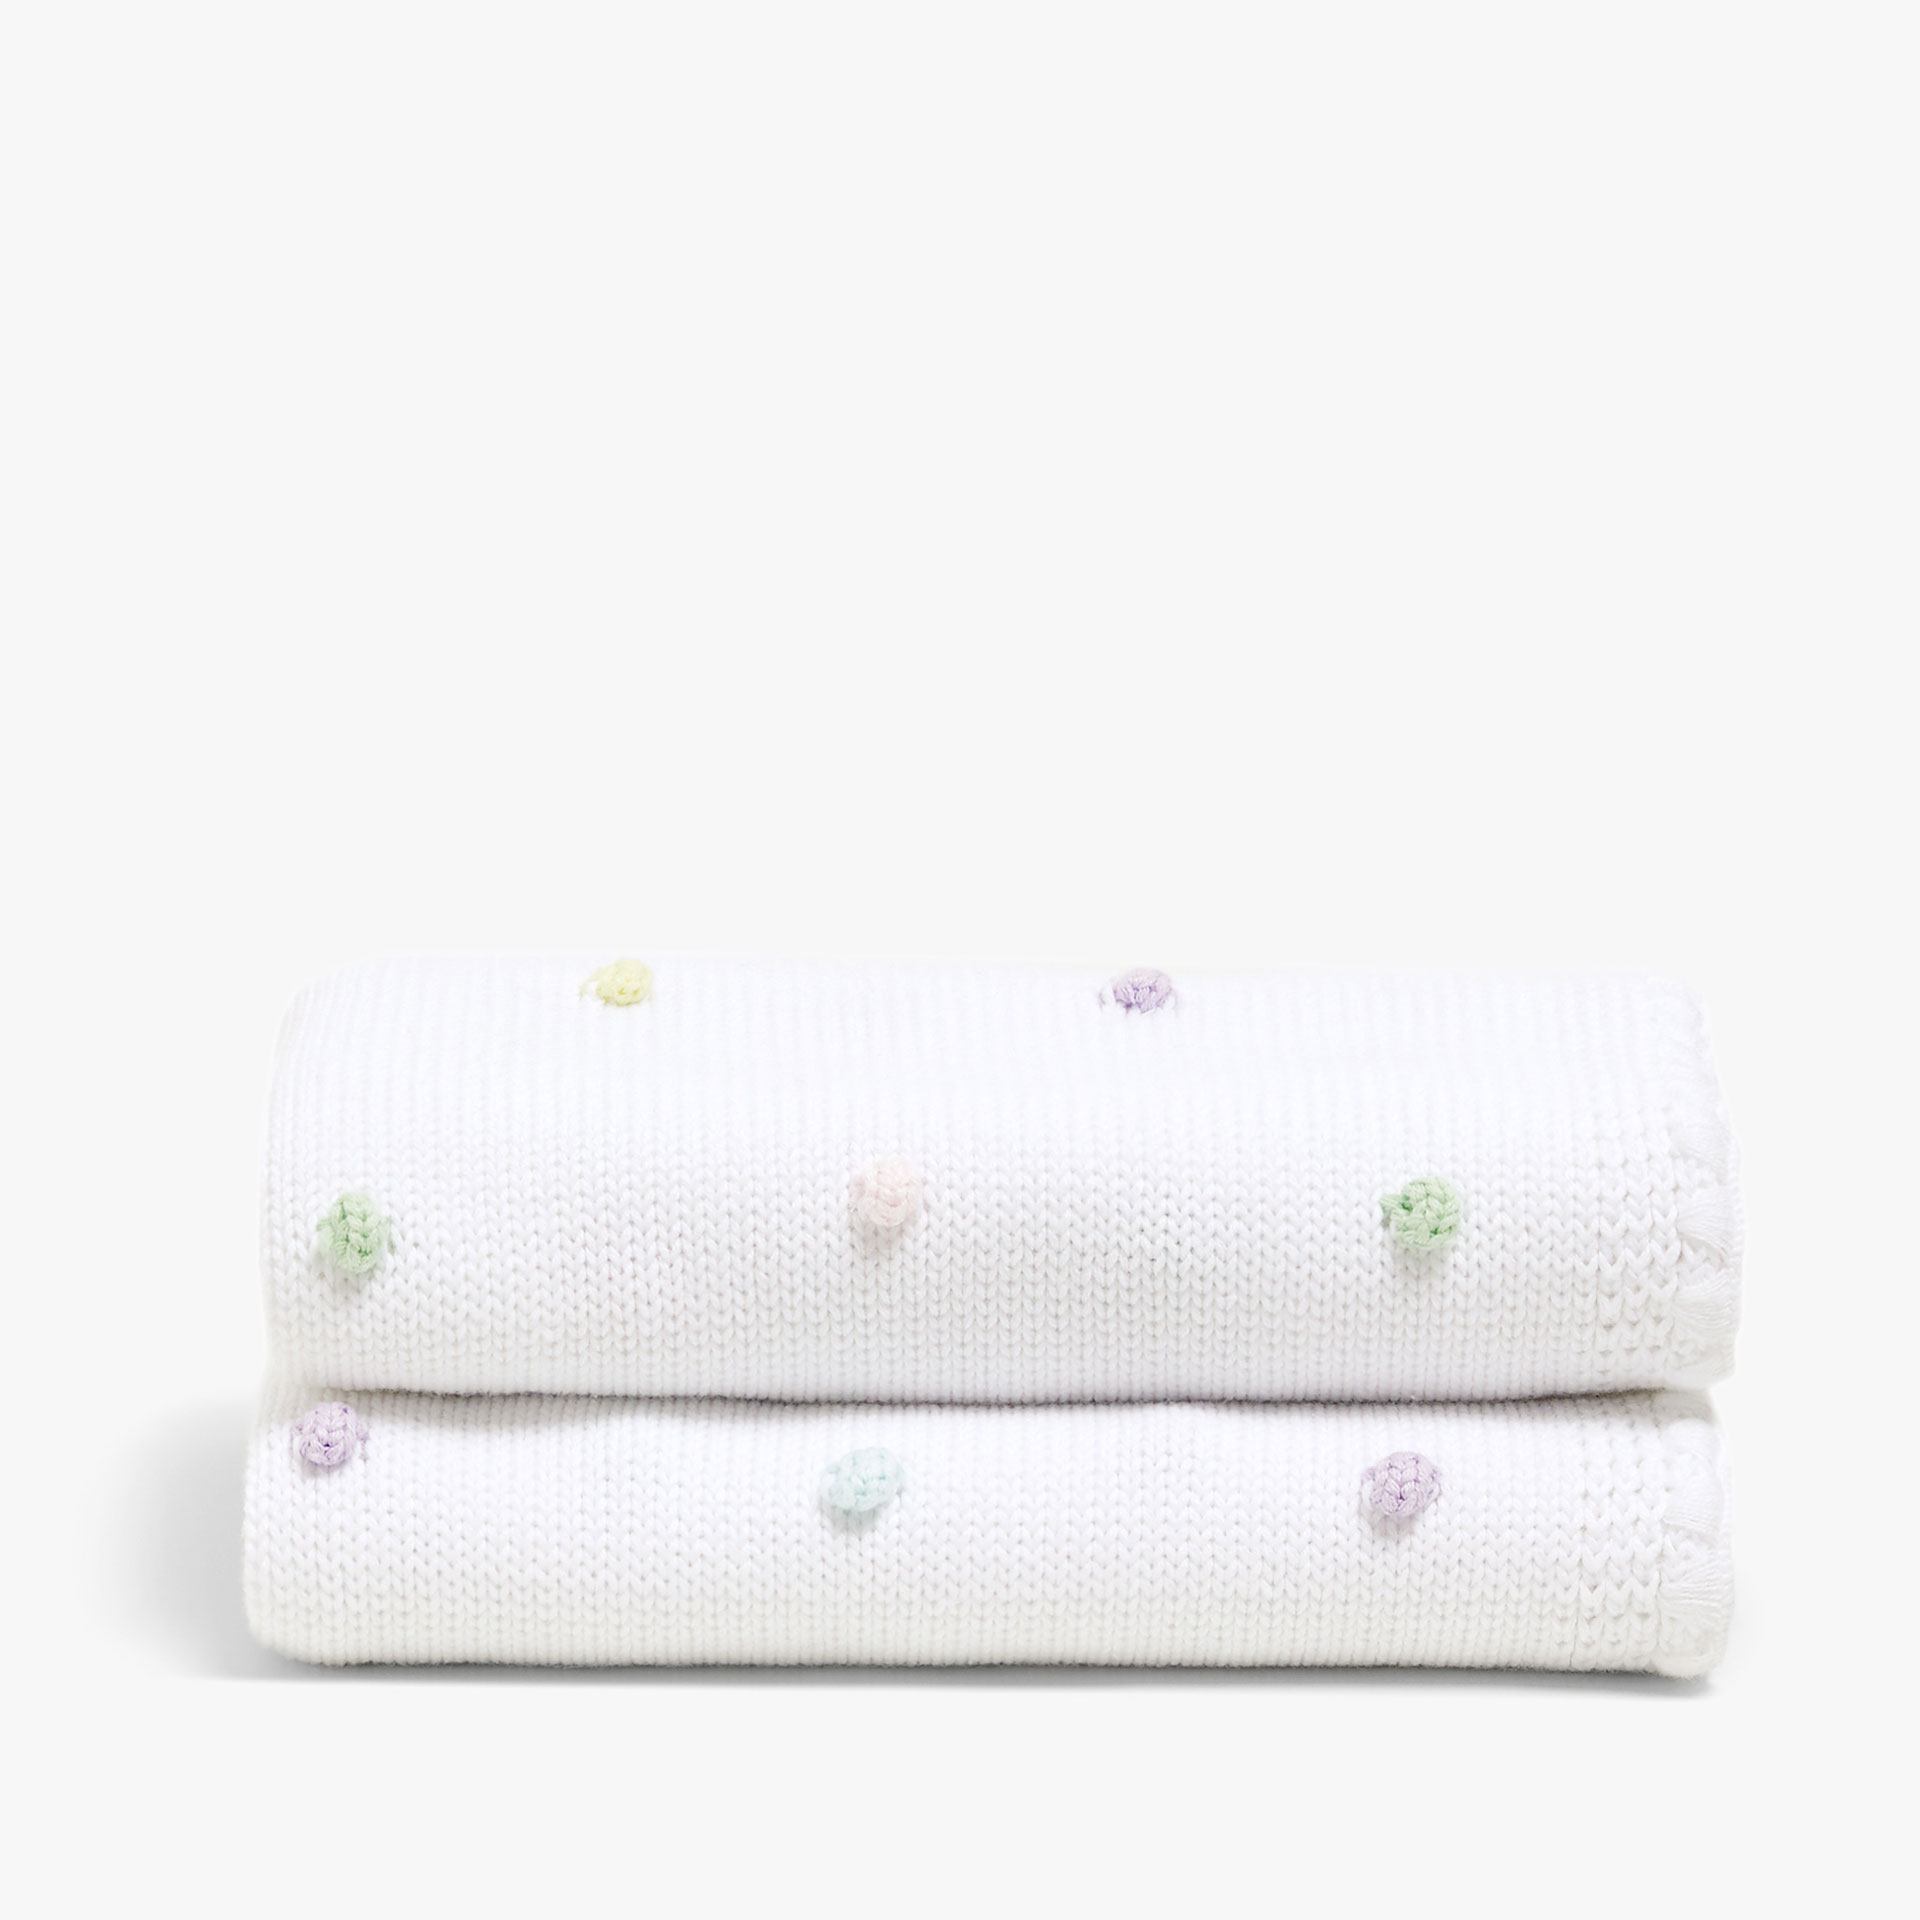 TWO-TONE COTTON BLANKET WITH RAISED POLKA DOTS